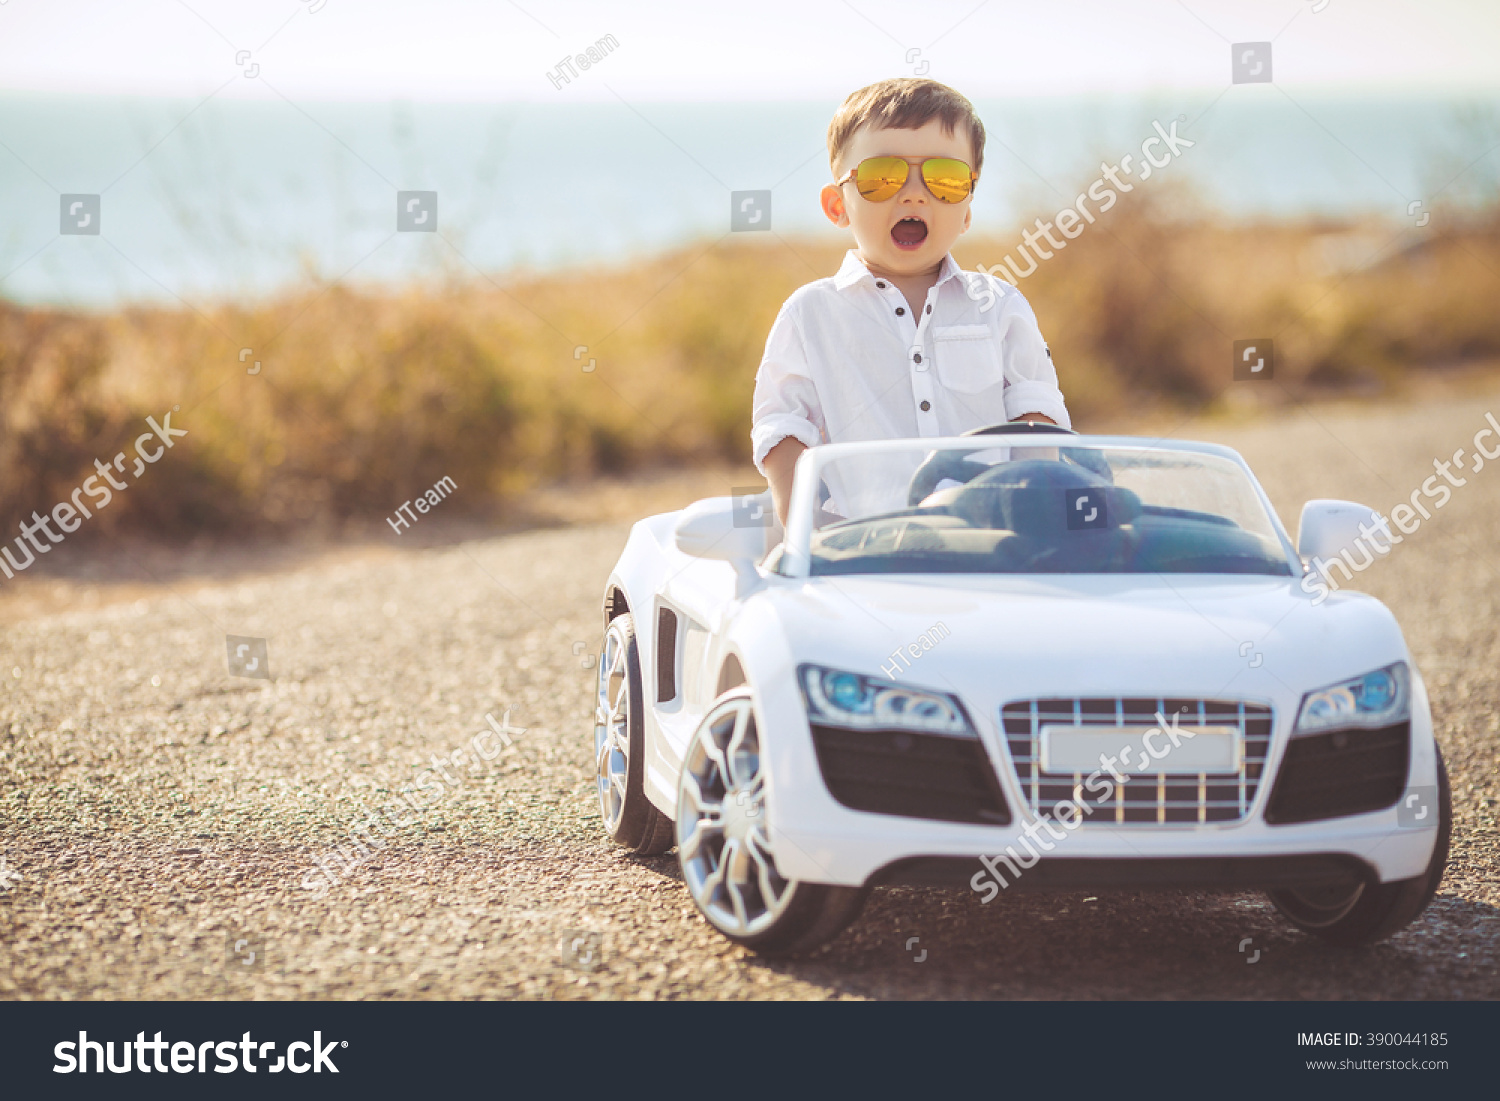 funny boy car driver steering wheel stock photo 390044185 shutterstock. Black Bedroom Furniture Sets. Home Design Ideas